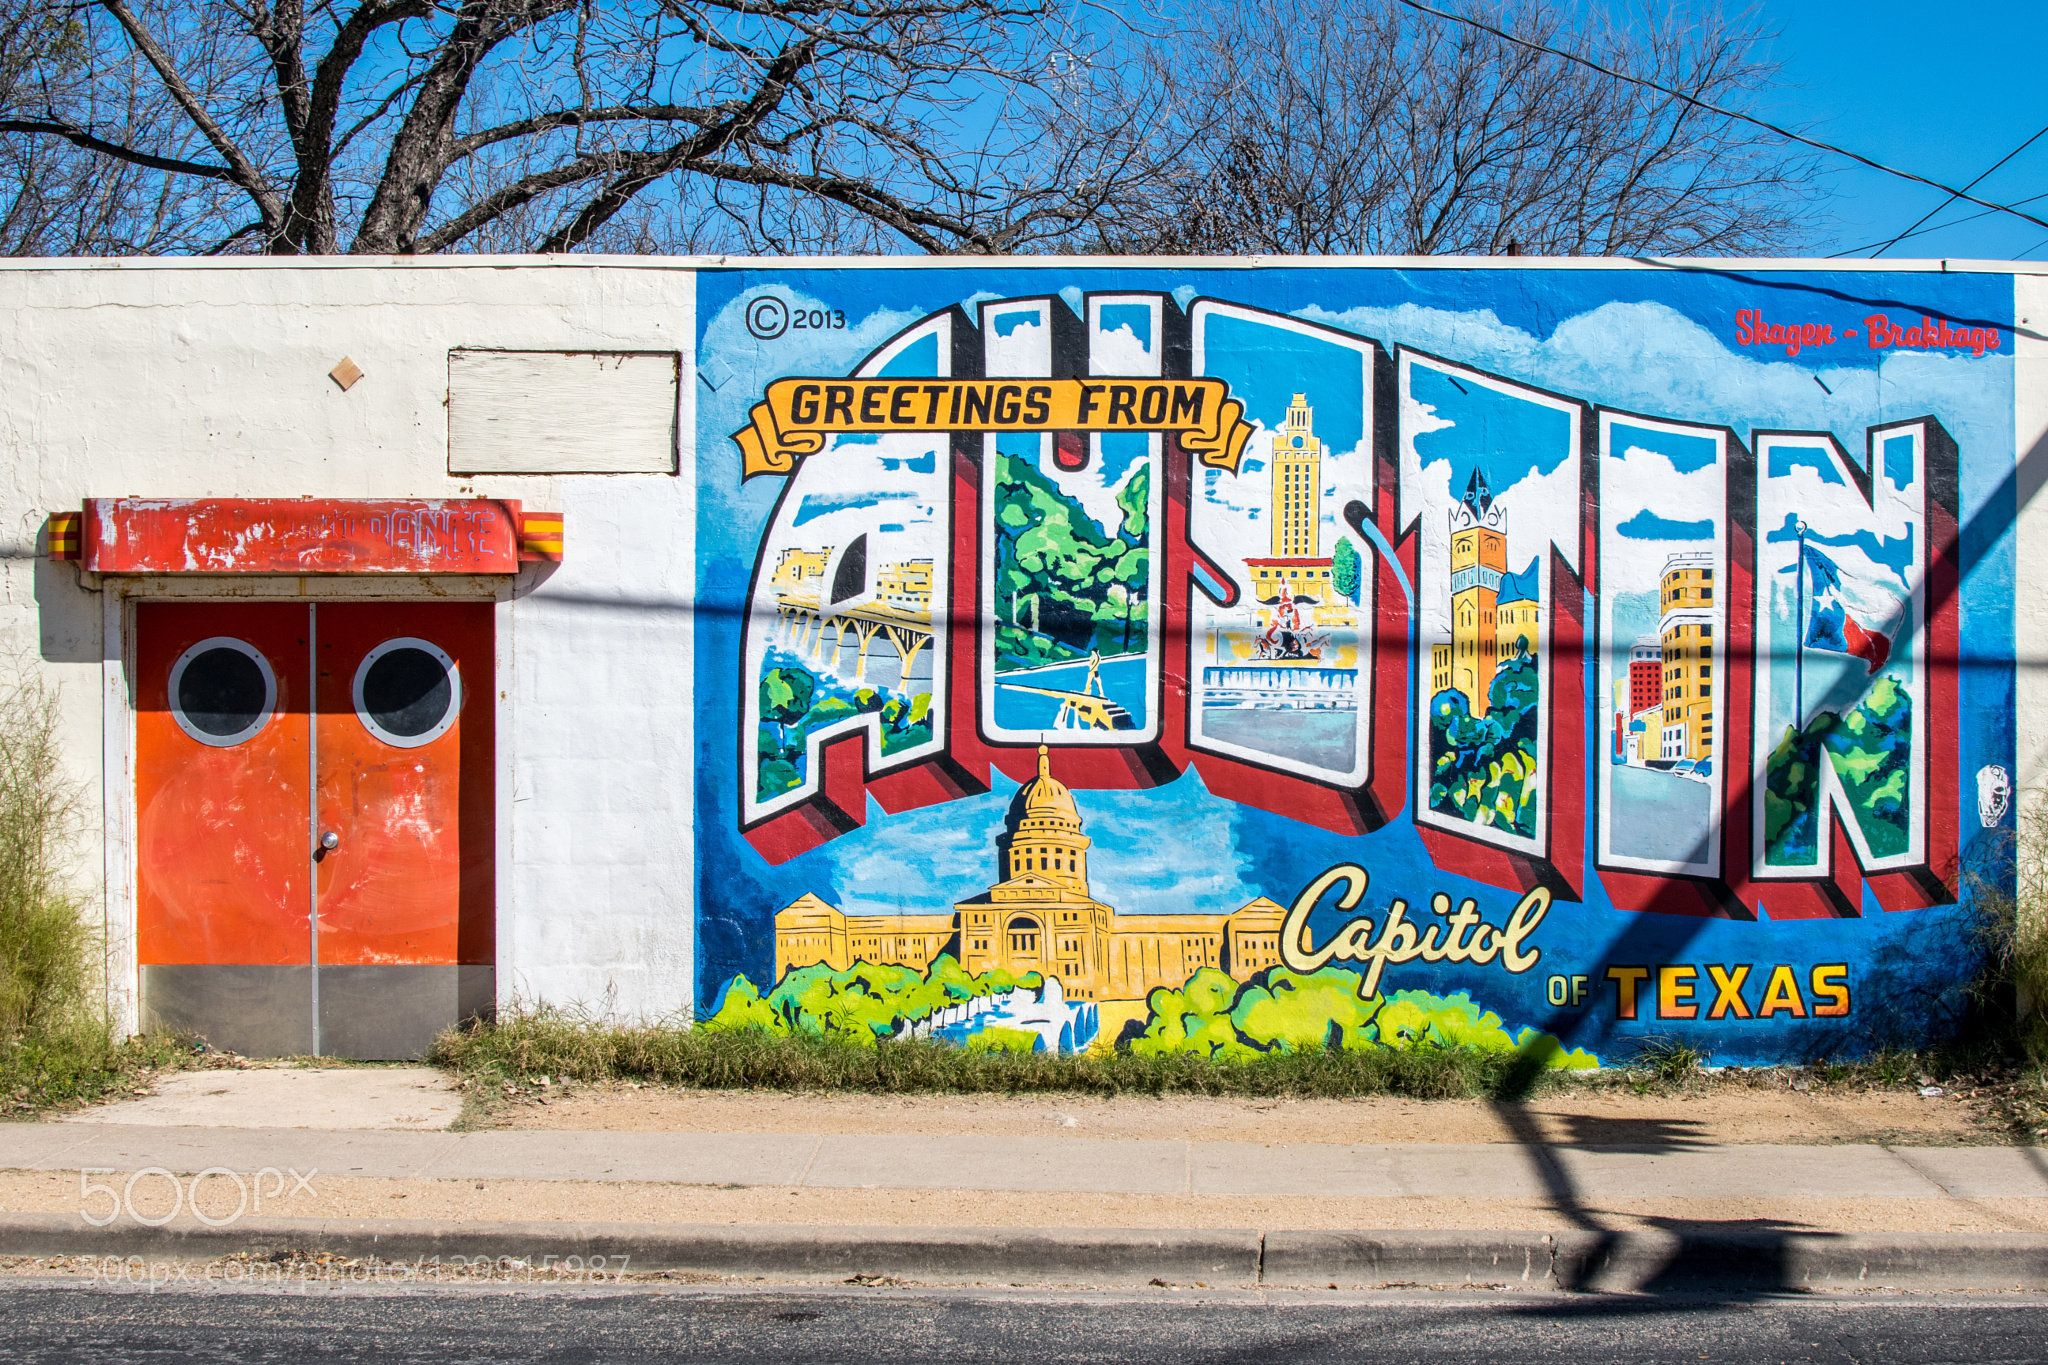 This is the famous Greetings from Austin sign in Austin texas!